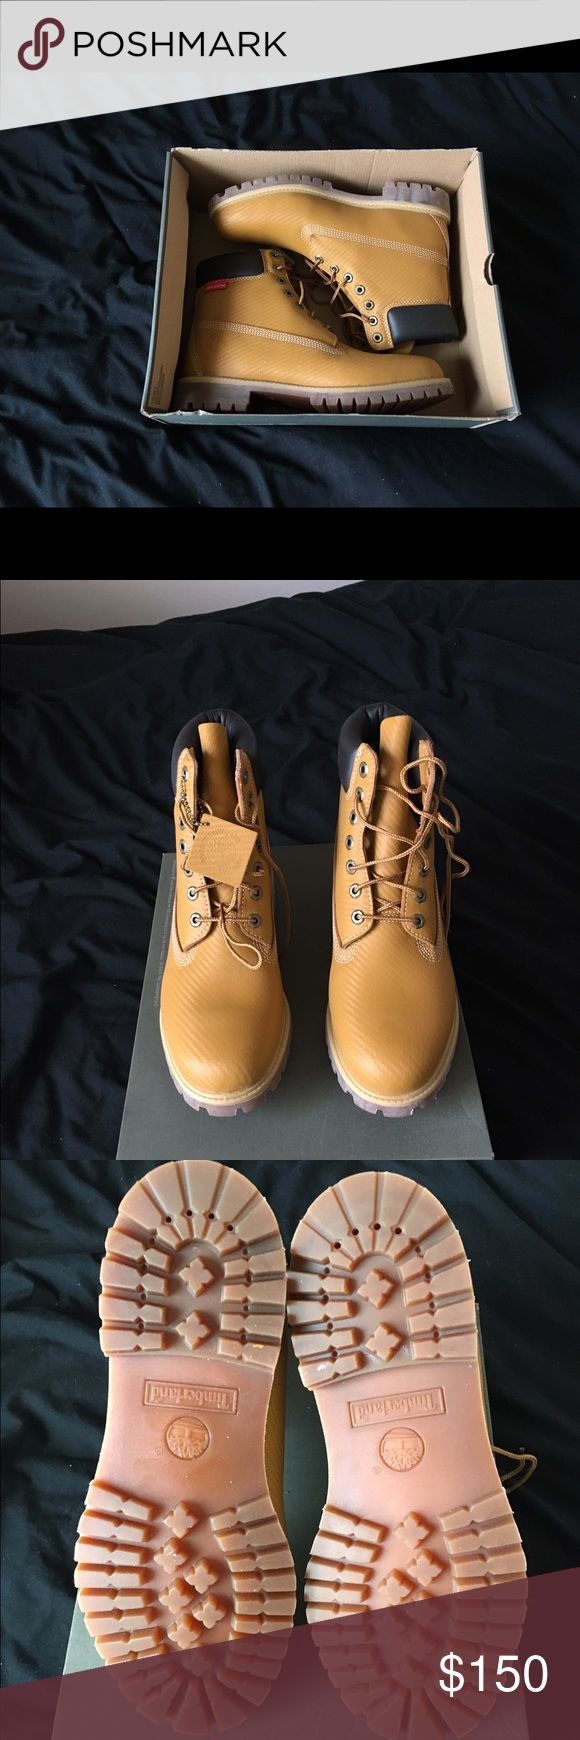 Timberland Helcor Waterproof Leather Boots For sale is a pair of Timberland boots. Men's size 10, 10.5, & 11. Timberland Helcor waterproof leather boots. In classic tan! Great for winter. Please feel free to message me with any questions. Reasonable offers considered Timberland Shoes Boots